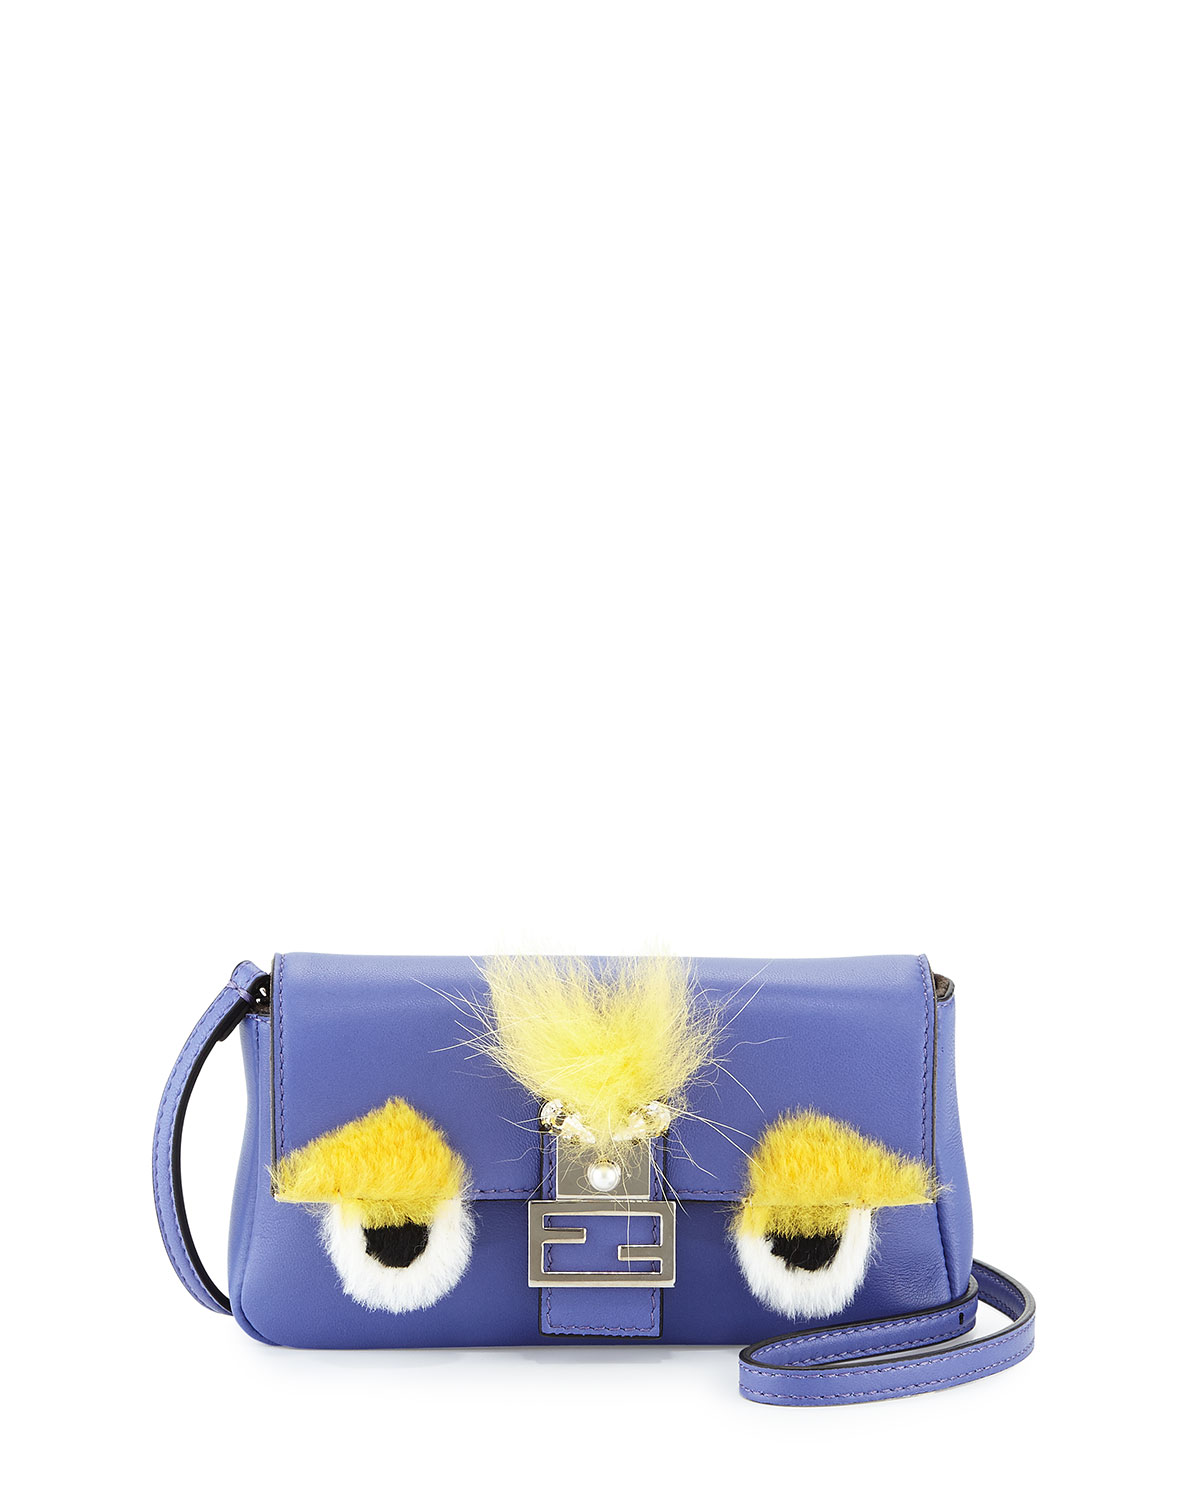 1720865f2645 Fendi Baguette Micro Bag Bugs Crossbody Bag